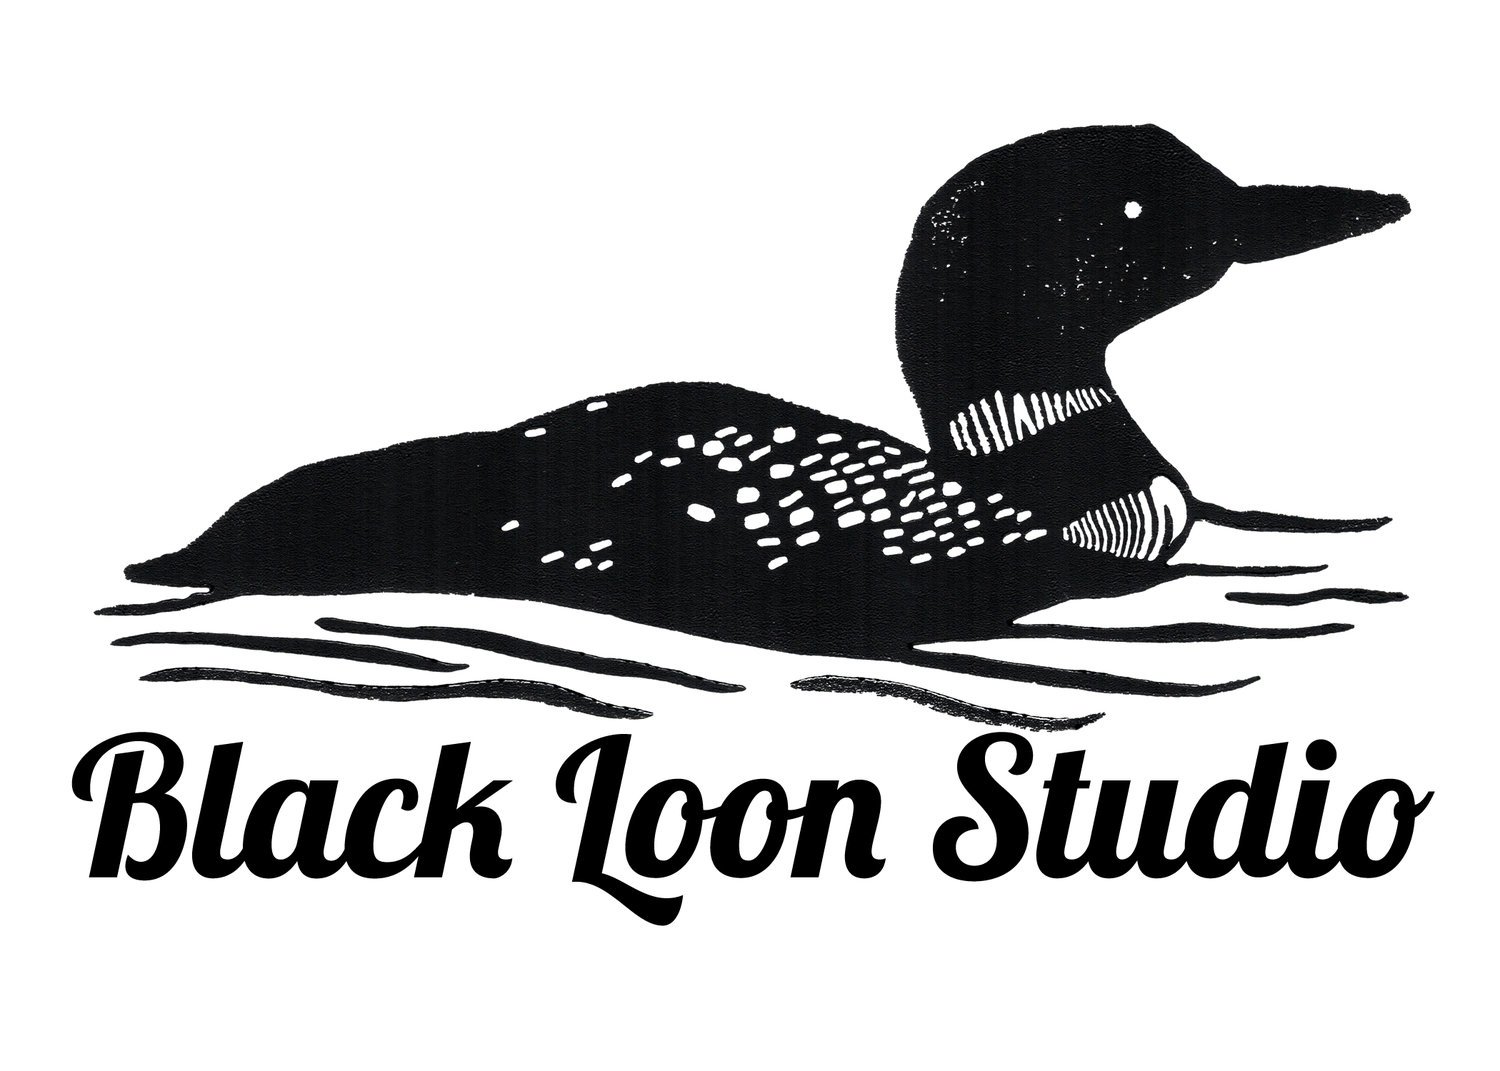 Black Loon Studio